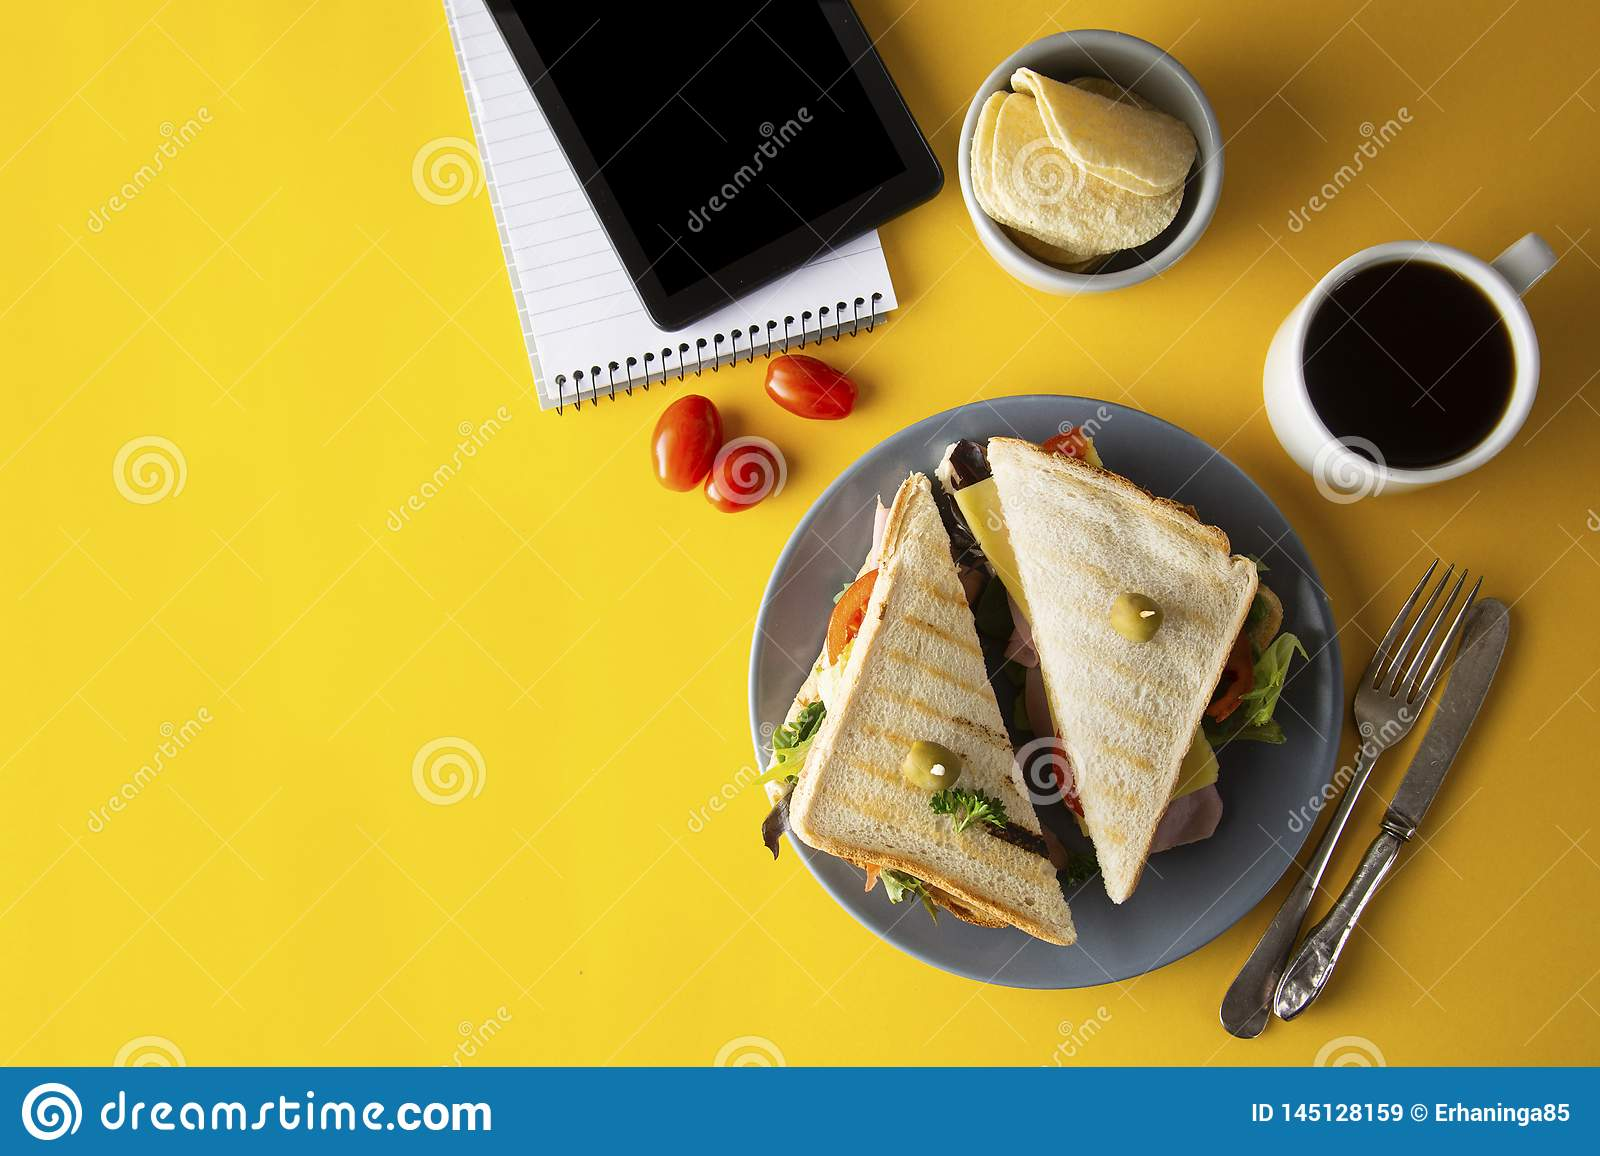 Snacks, fast food concept. Eatting at work place. Fresh club sandwich, vegetables, coffee, potato chips, sweet cookies. Tablet